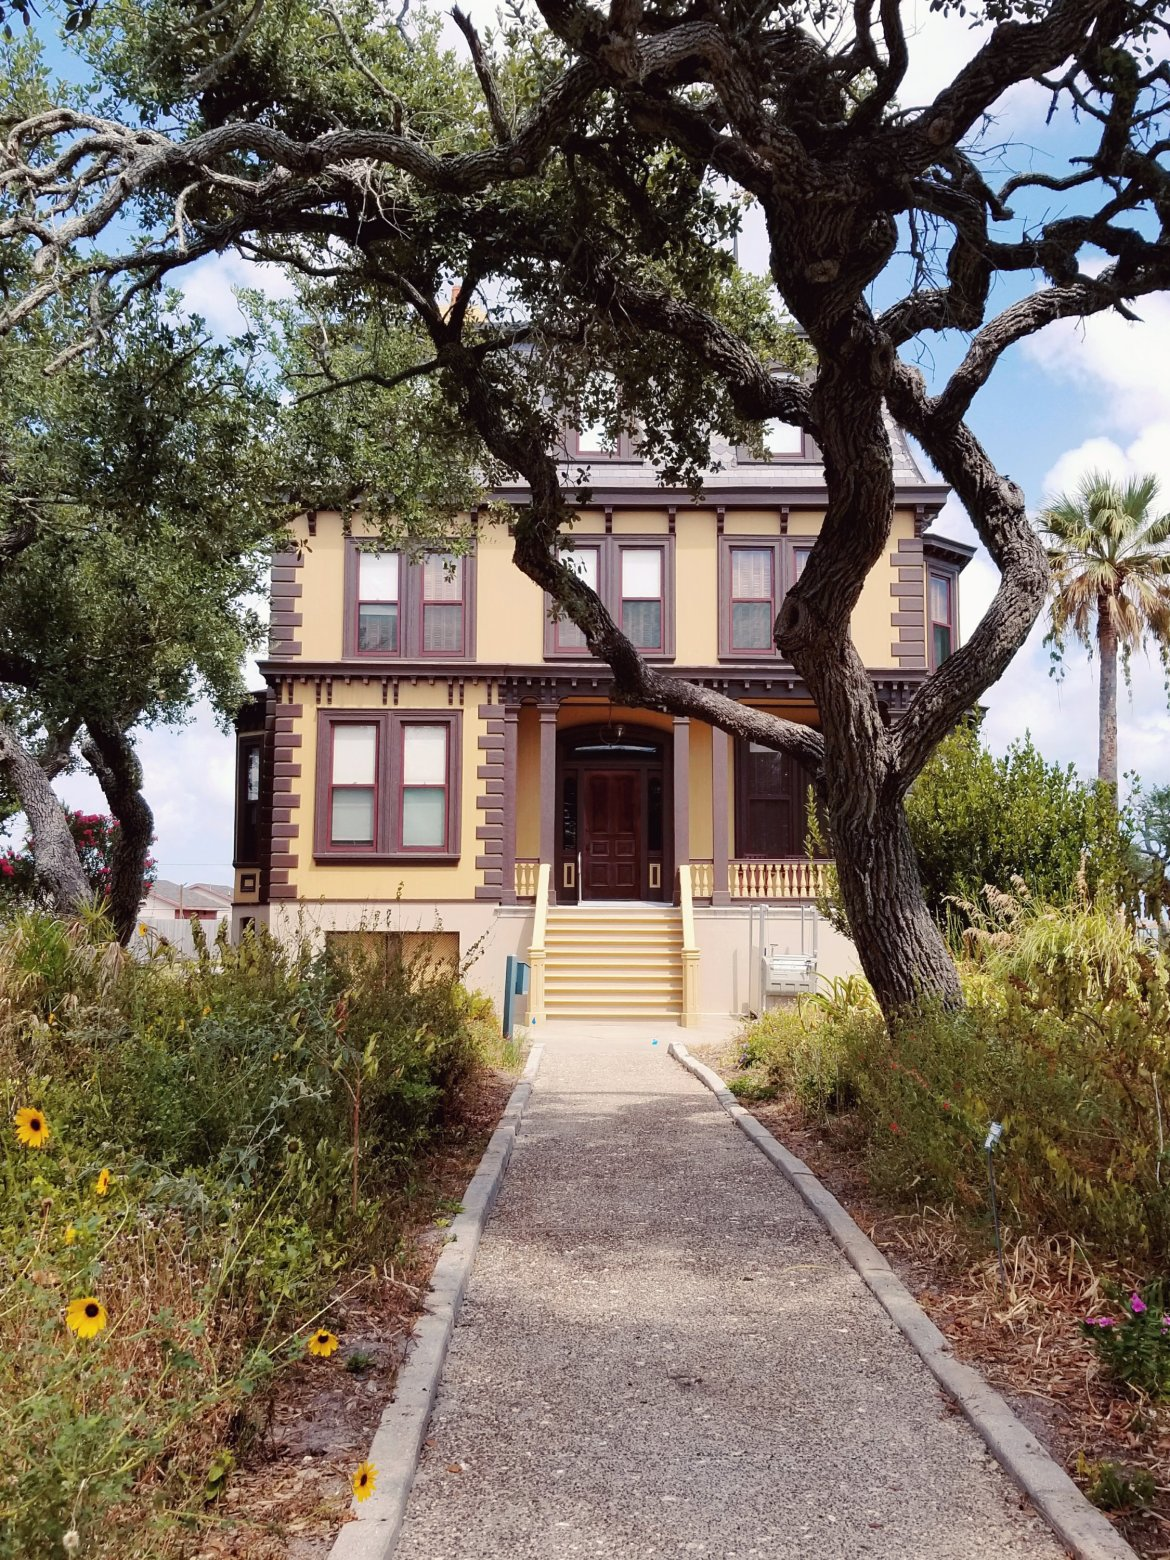 Rockport Texas Things to do in a weekend- Visit the Mansion